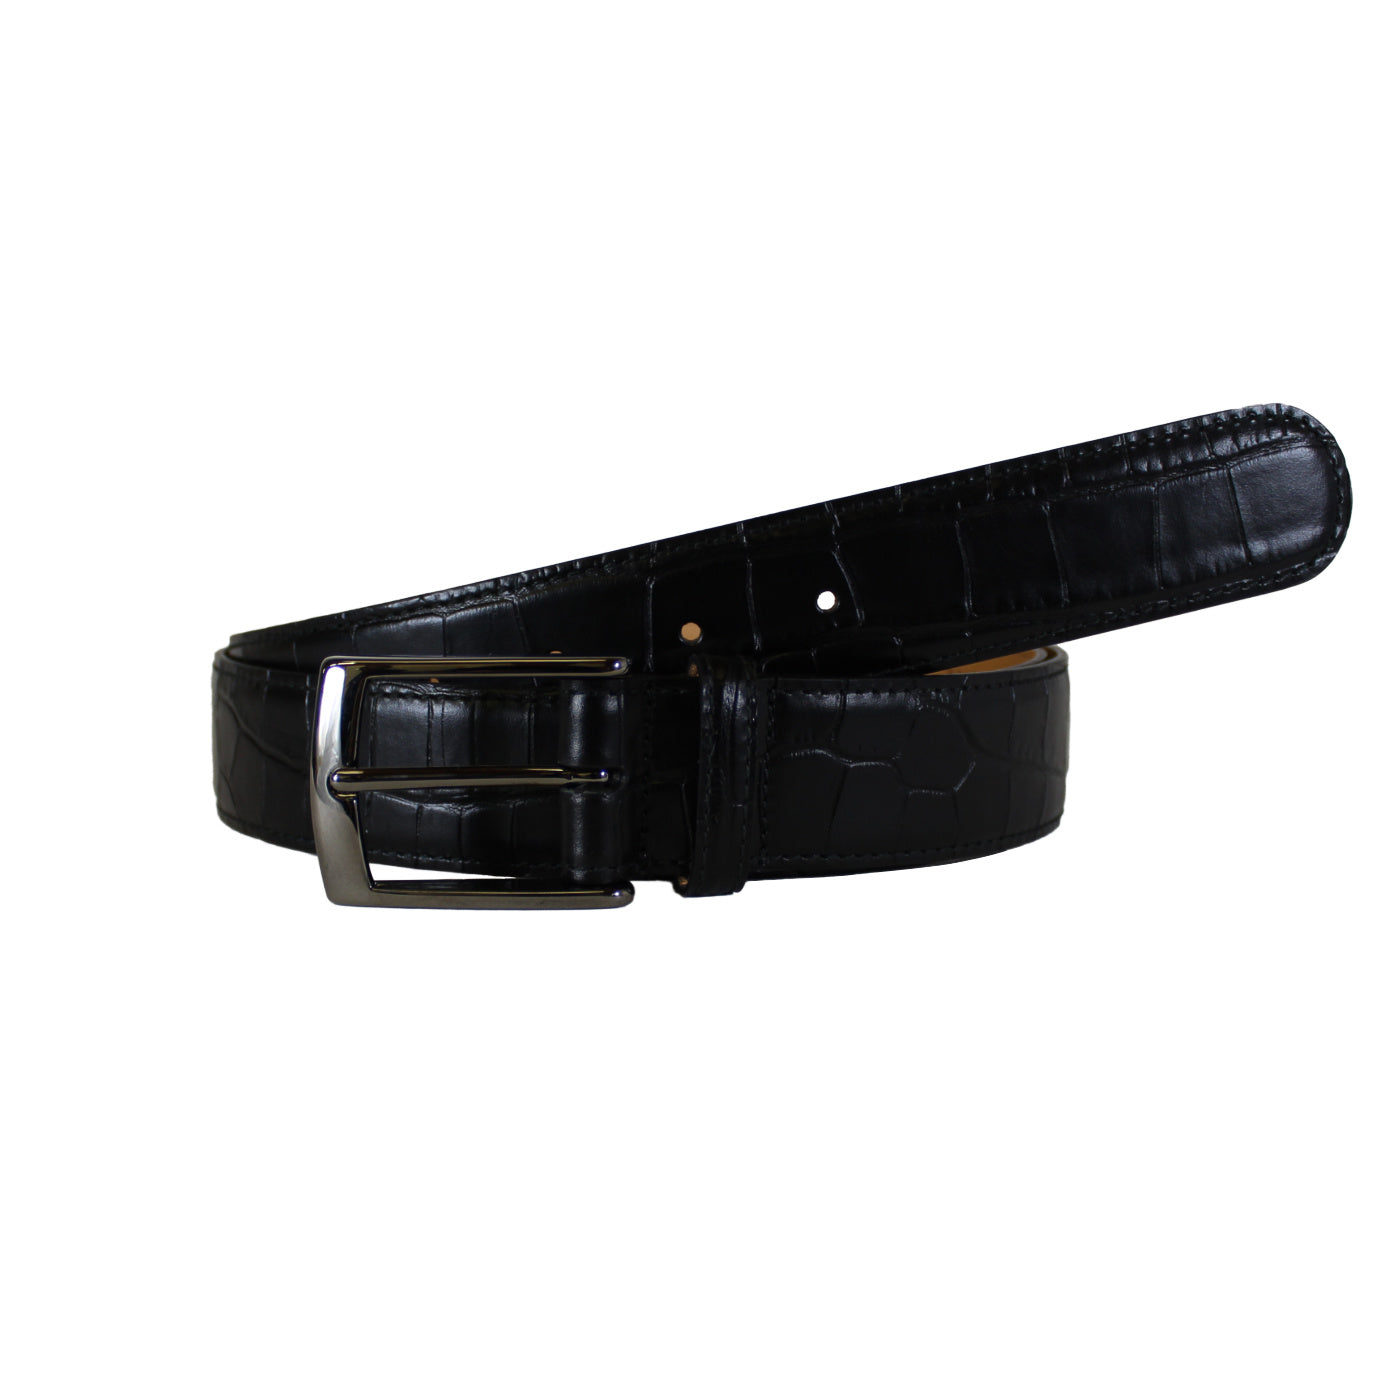 "Croccodile Stamp Black Vegetable Tanned Leather Belt (Width 35 mm - 1 ½"")"